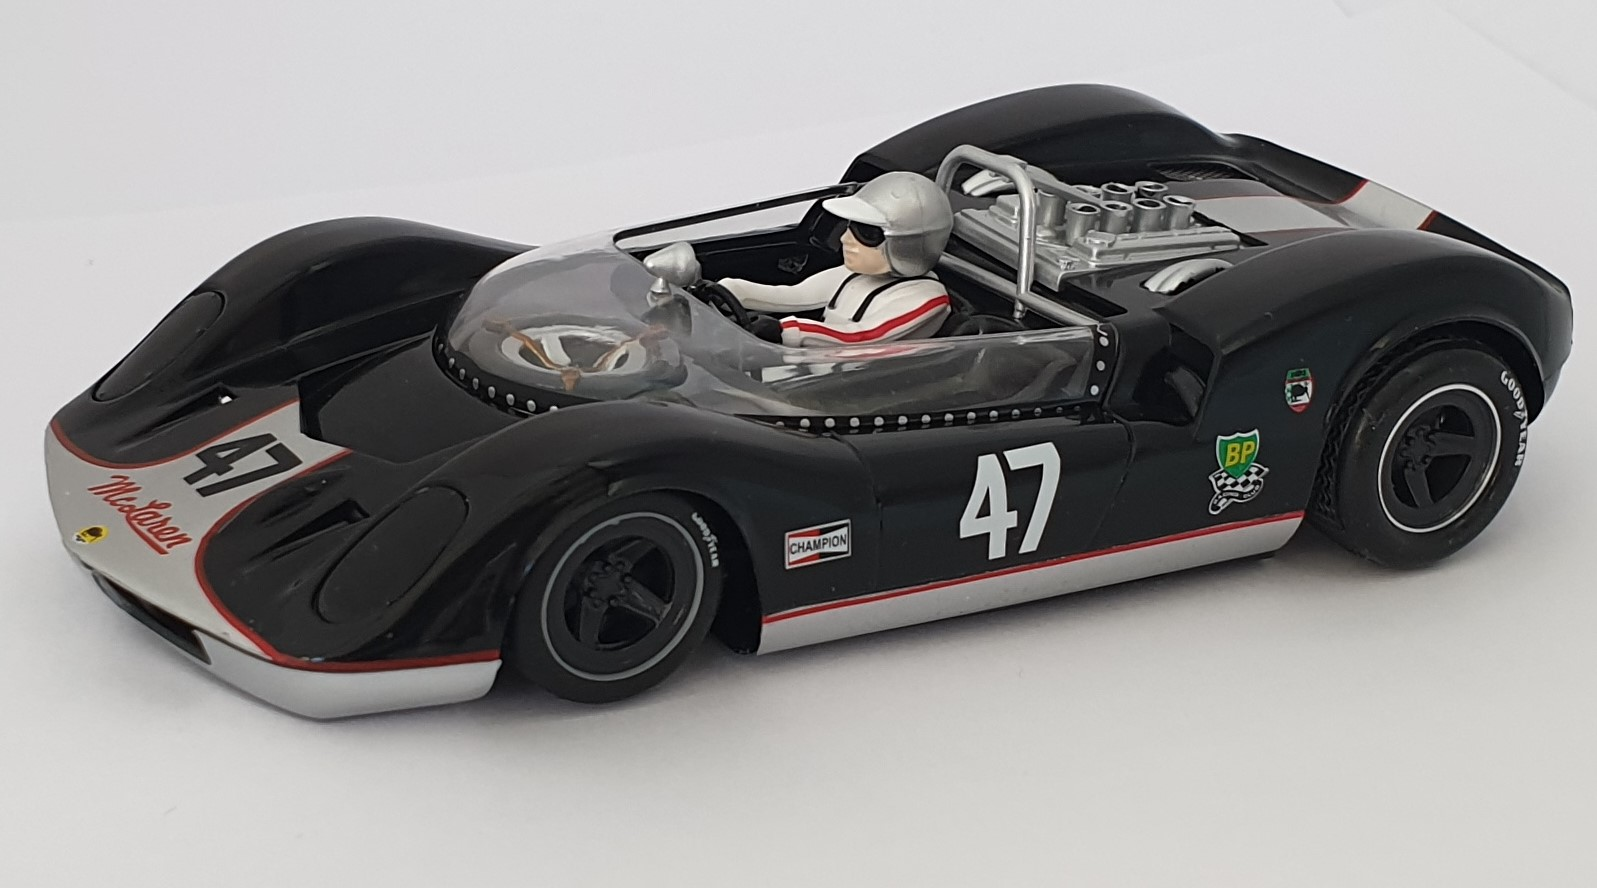 CA00401S/W Thunder Slot Mclaren ELVA MKI Can-Am, No.47